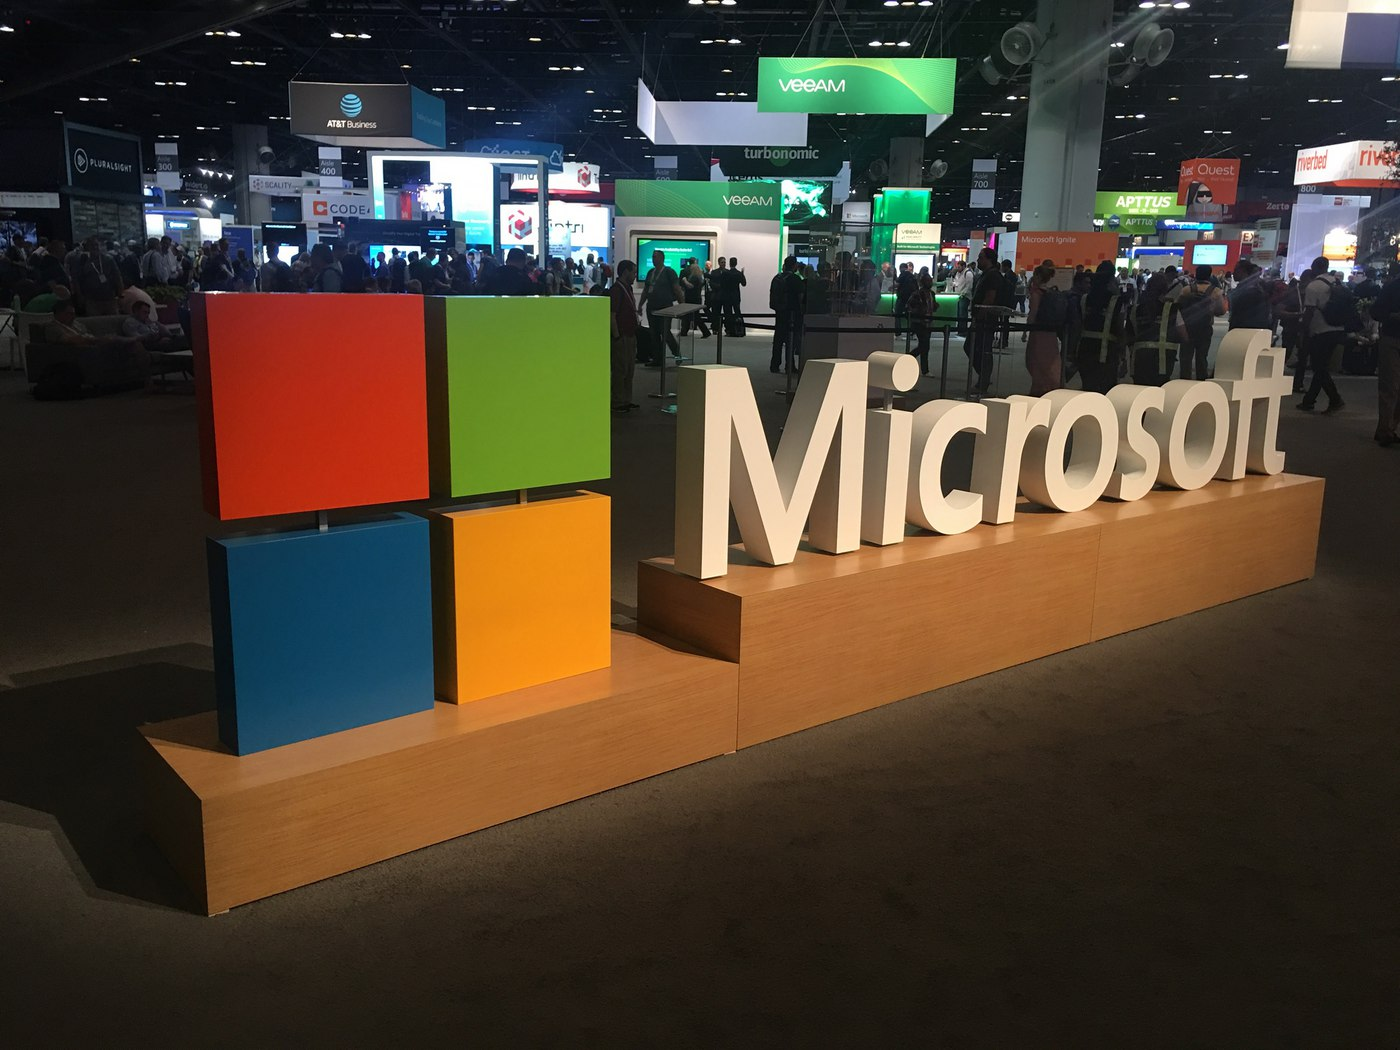 Microsoft Top of Mind for Business after Attending Ignite (Video)